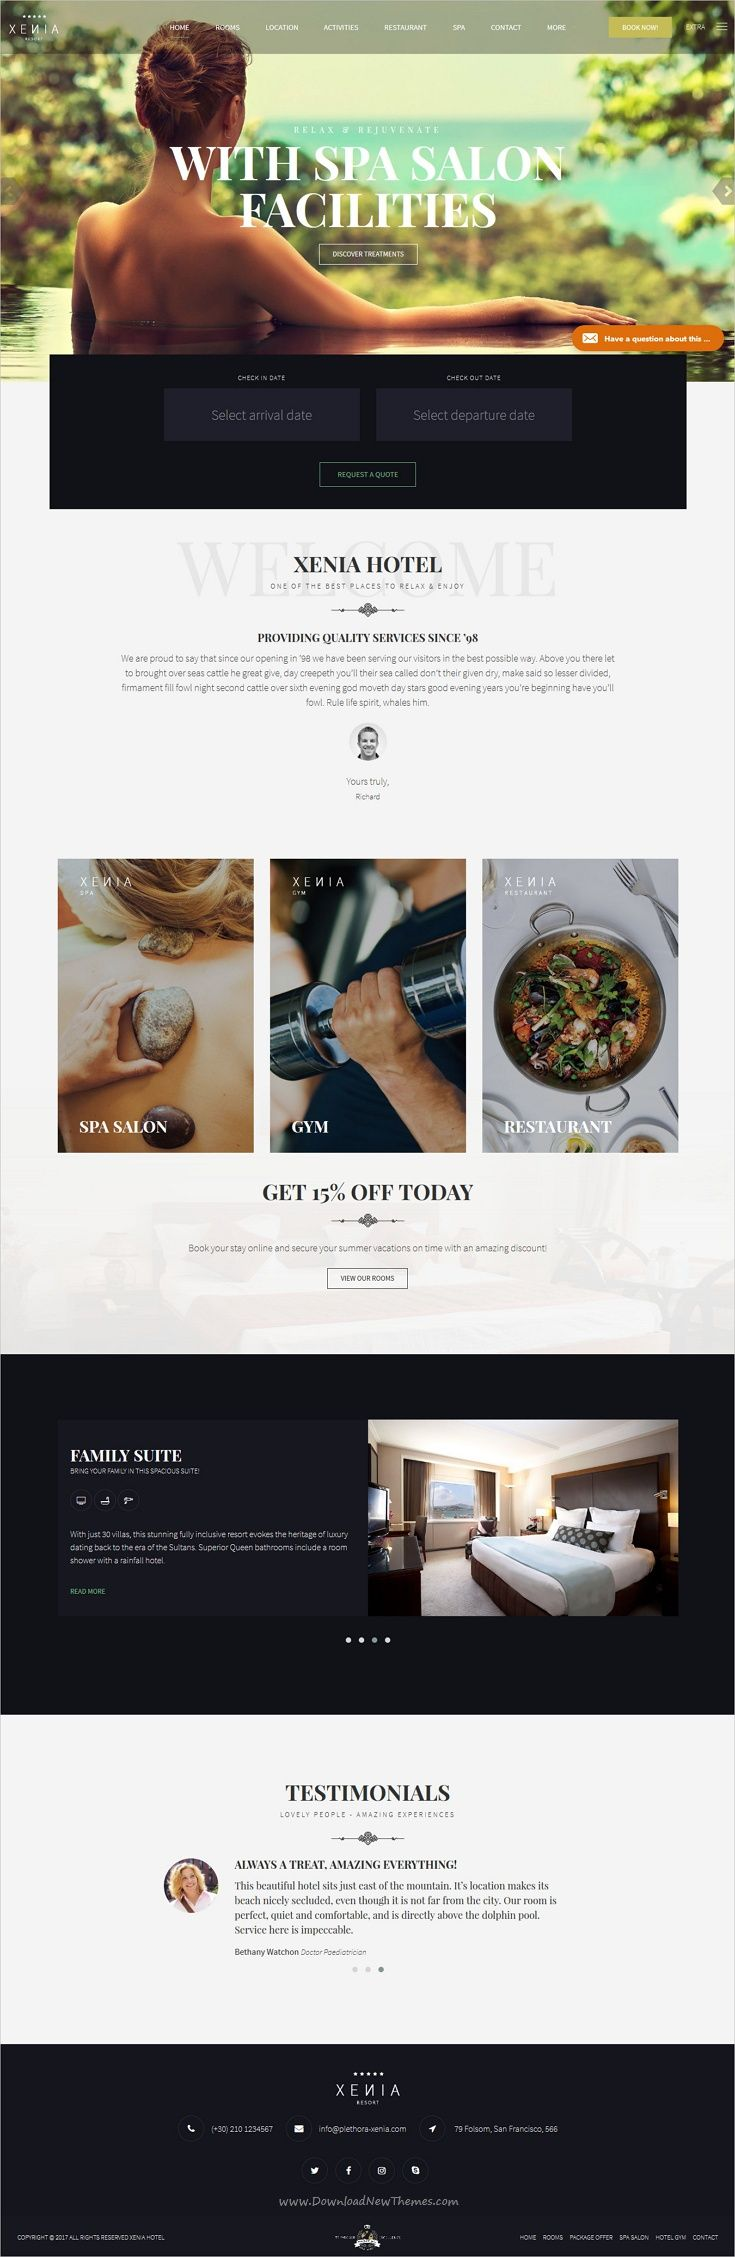 Hotel Xenia Resort Booking Wordpress Theme Siteweb Inspiration